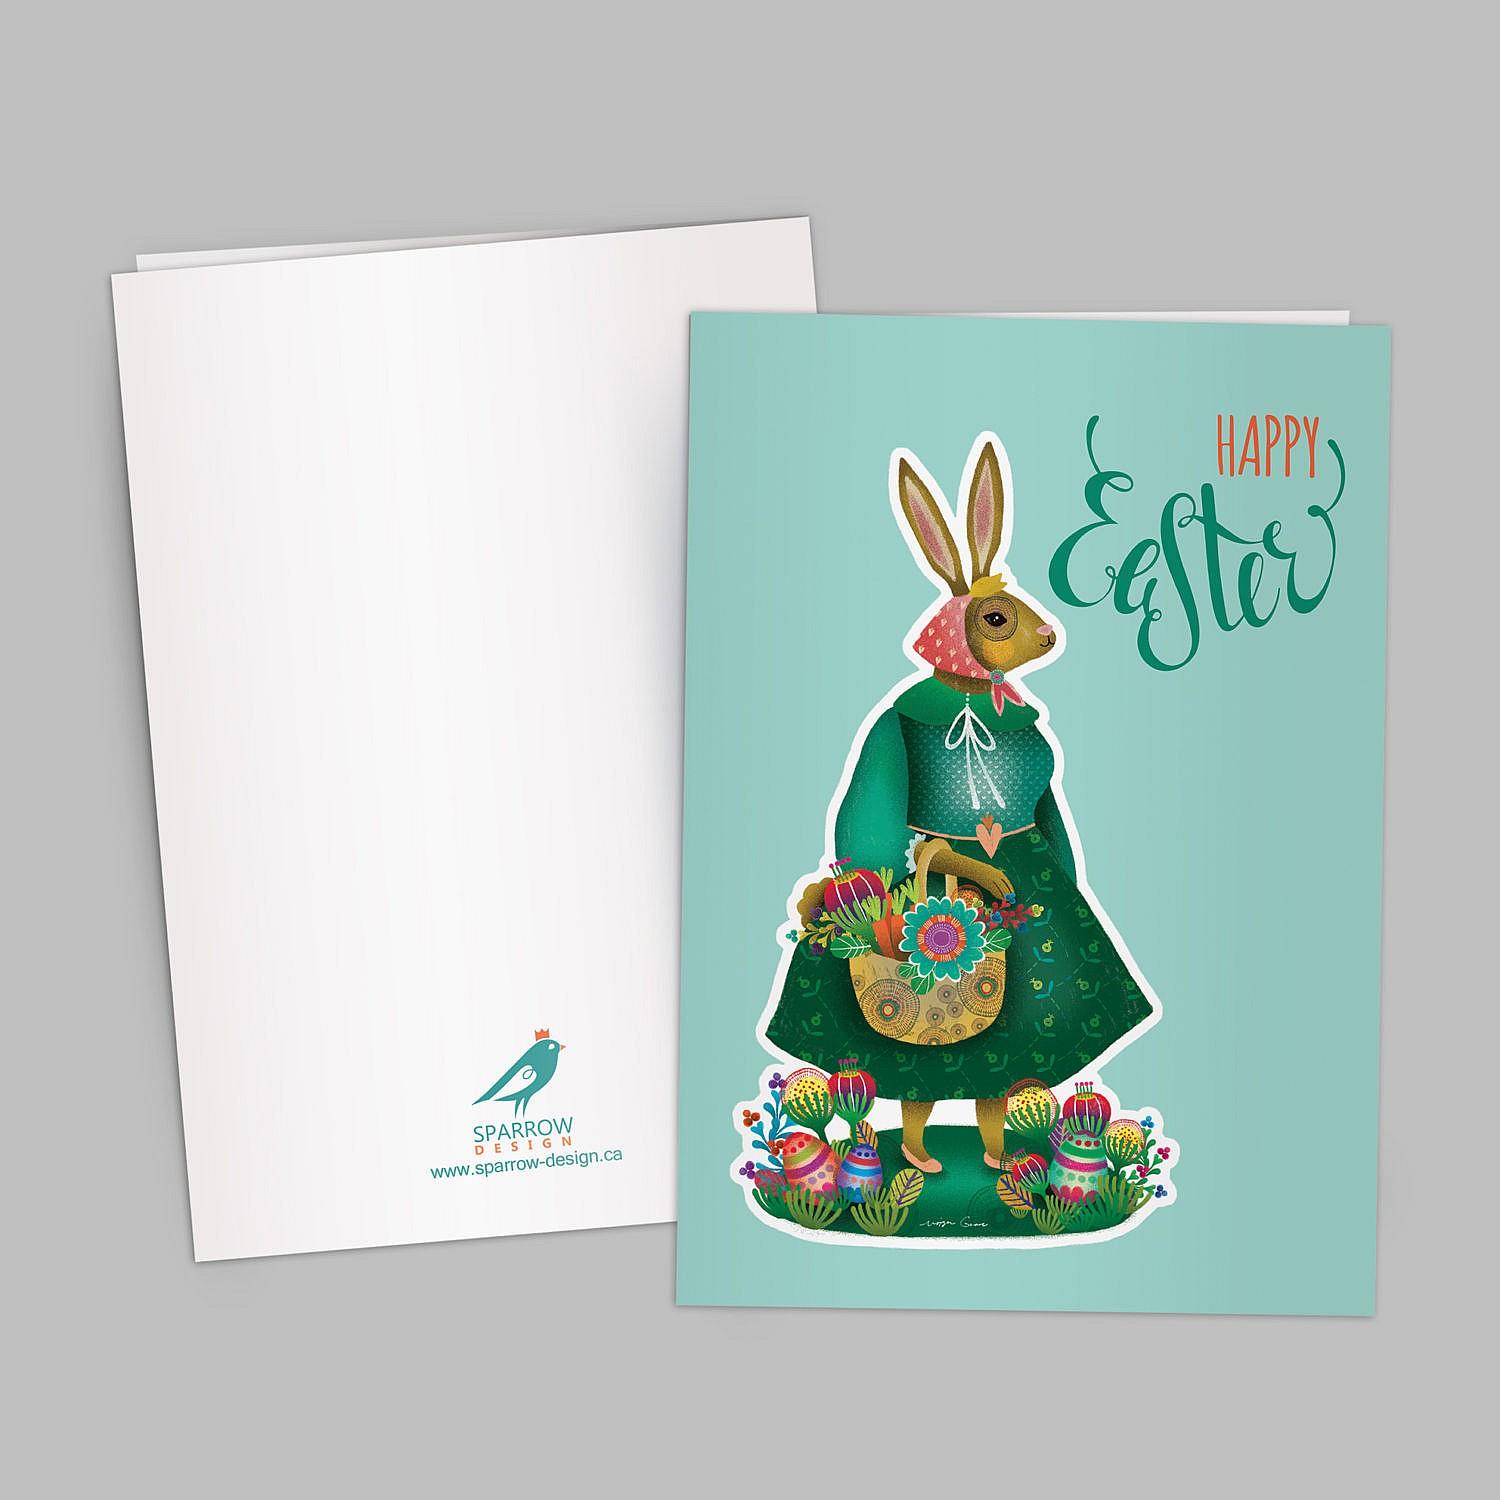 A green and lovely Easter greeting card with bunny theme, showing a cute bunny inside colorful and beautiful flowers and eggs. Also, a typographical title of Happy Easter is included in the design.